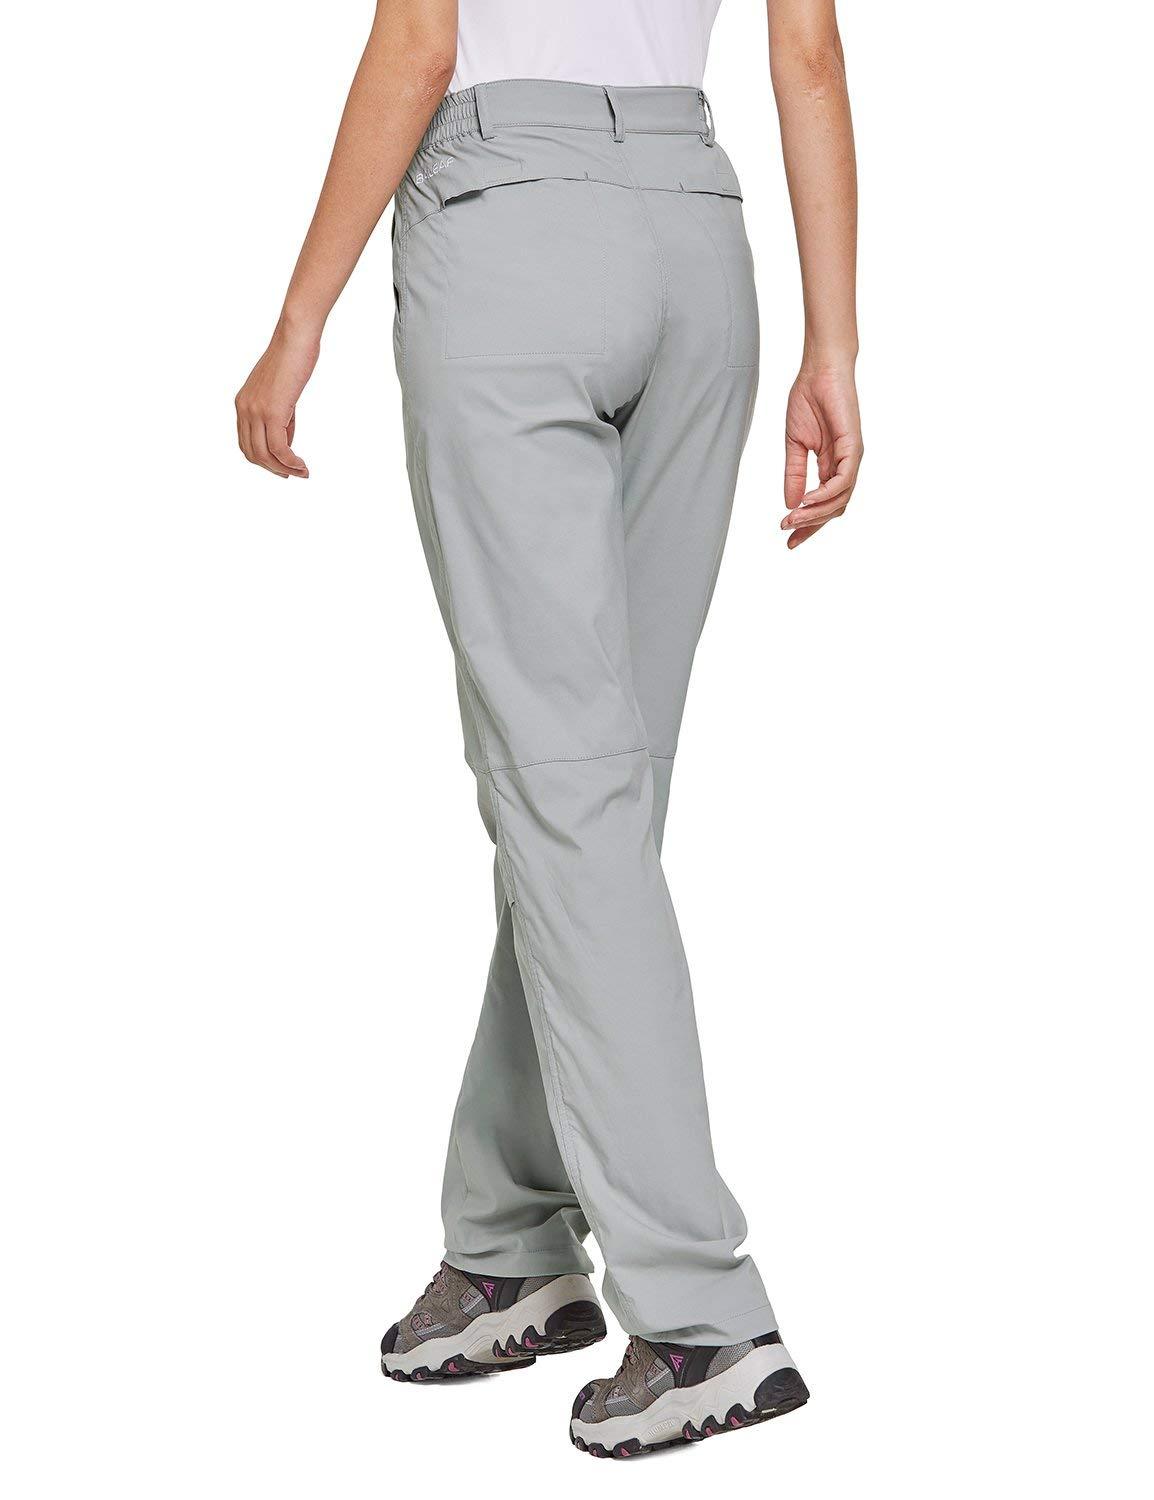 BALEAF Womens Hiking Roll Up Pants Lightweight Traveling Outdoor Pants Water Resistant UPF 50